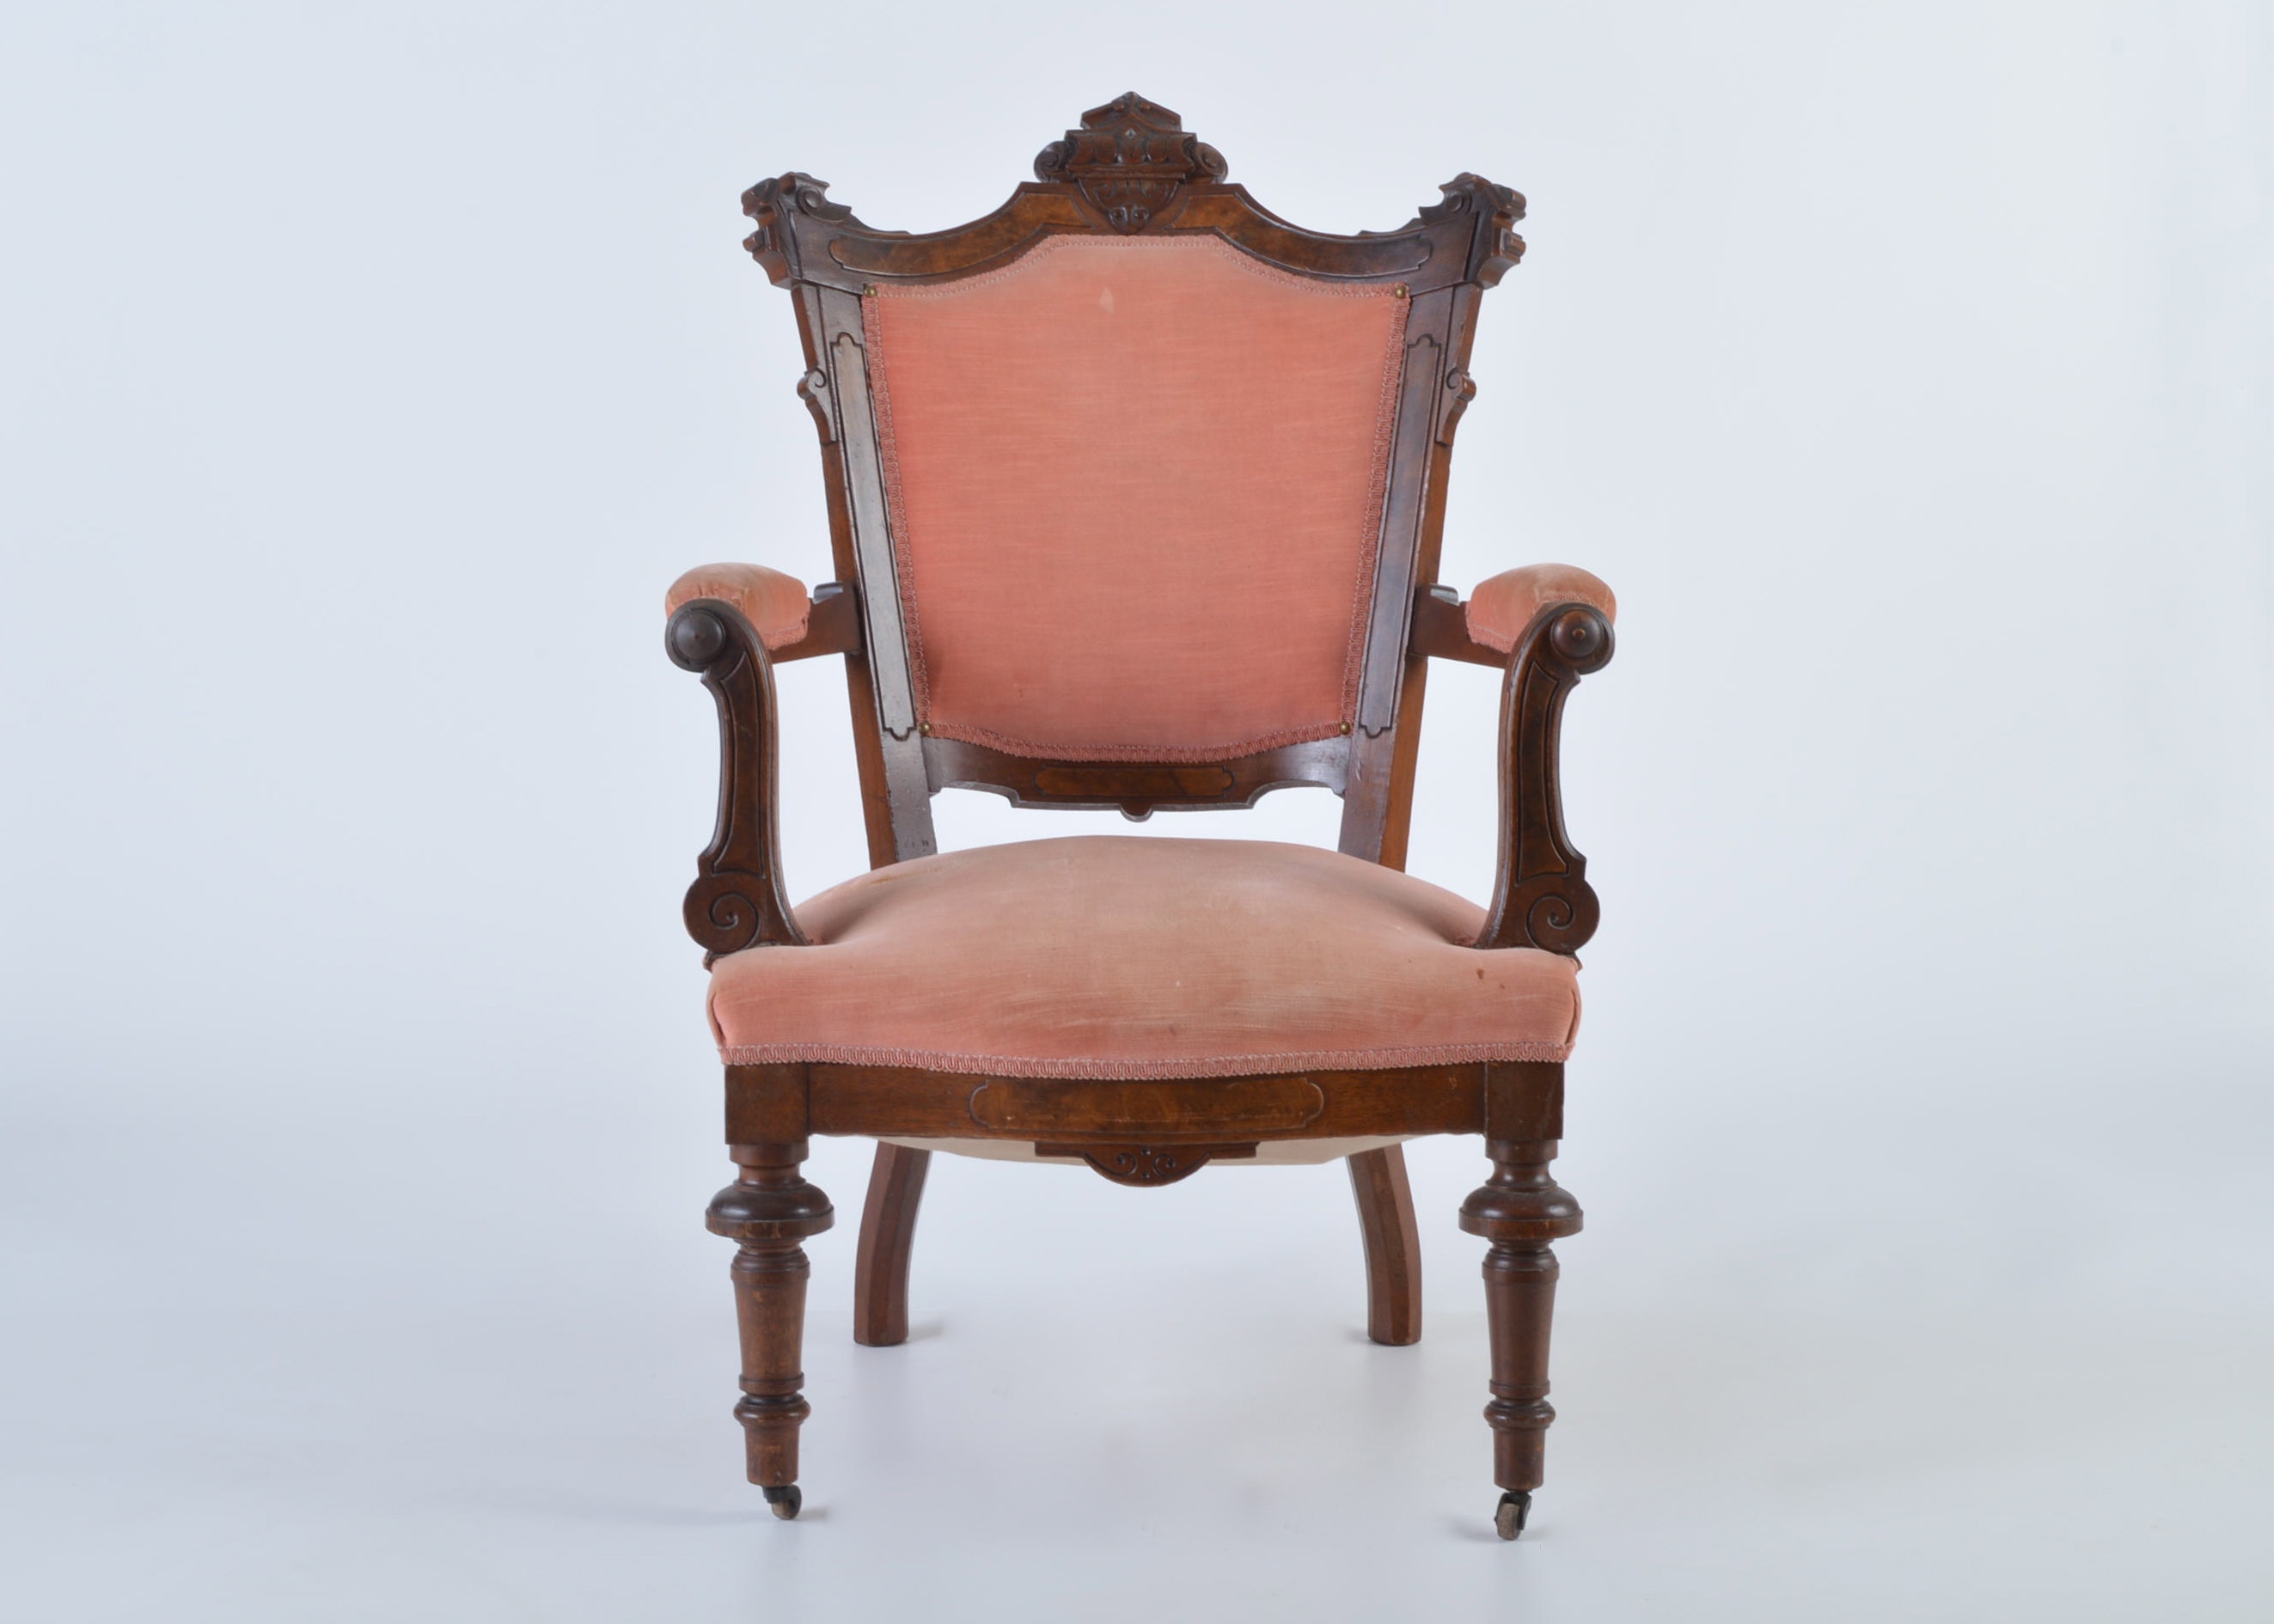 Chair french louis xv style chair wooden dining chair louis arm chair - Vintage Chairs Antique Chairs And Retro Chairs Auction In